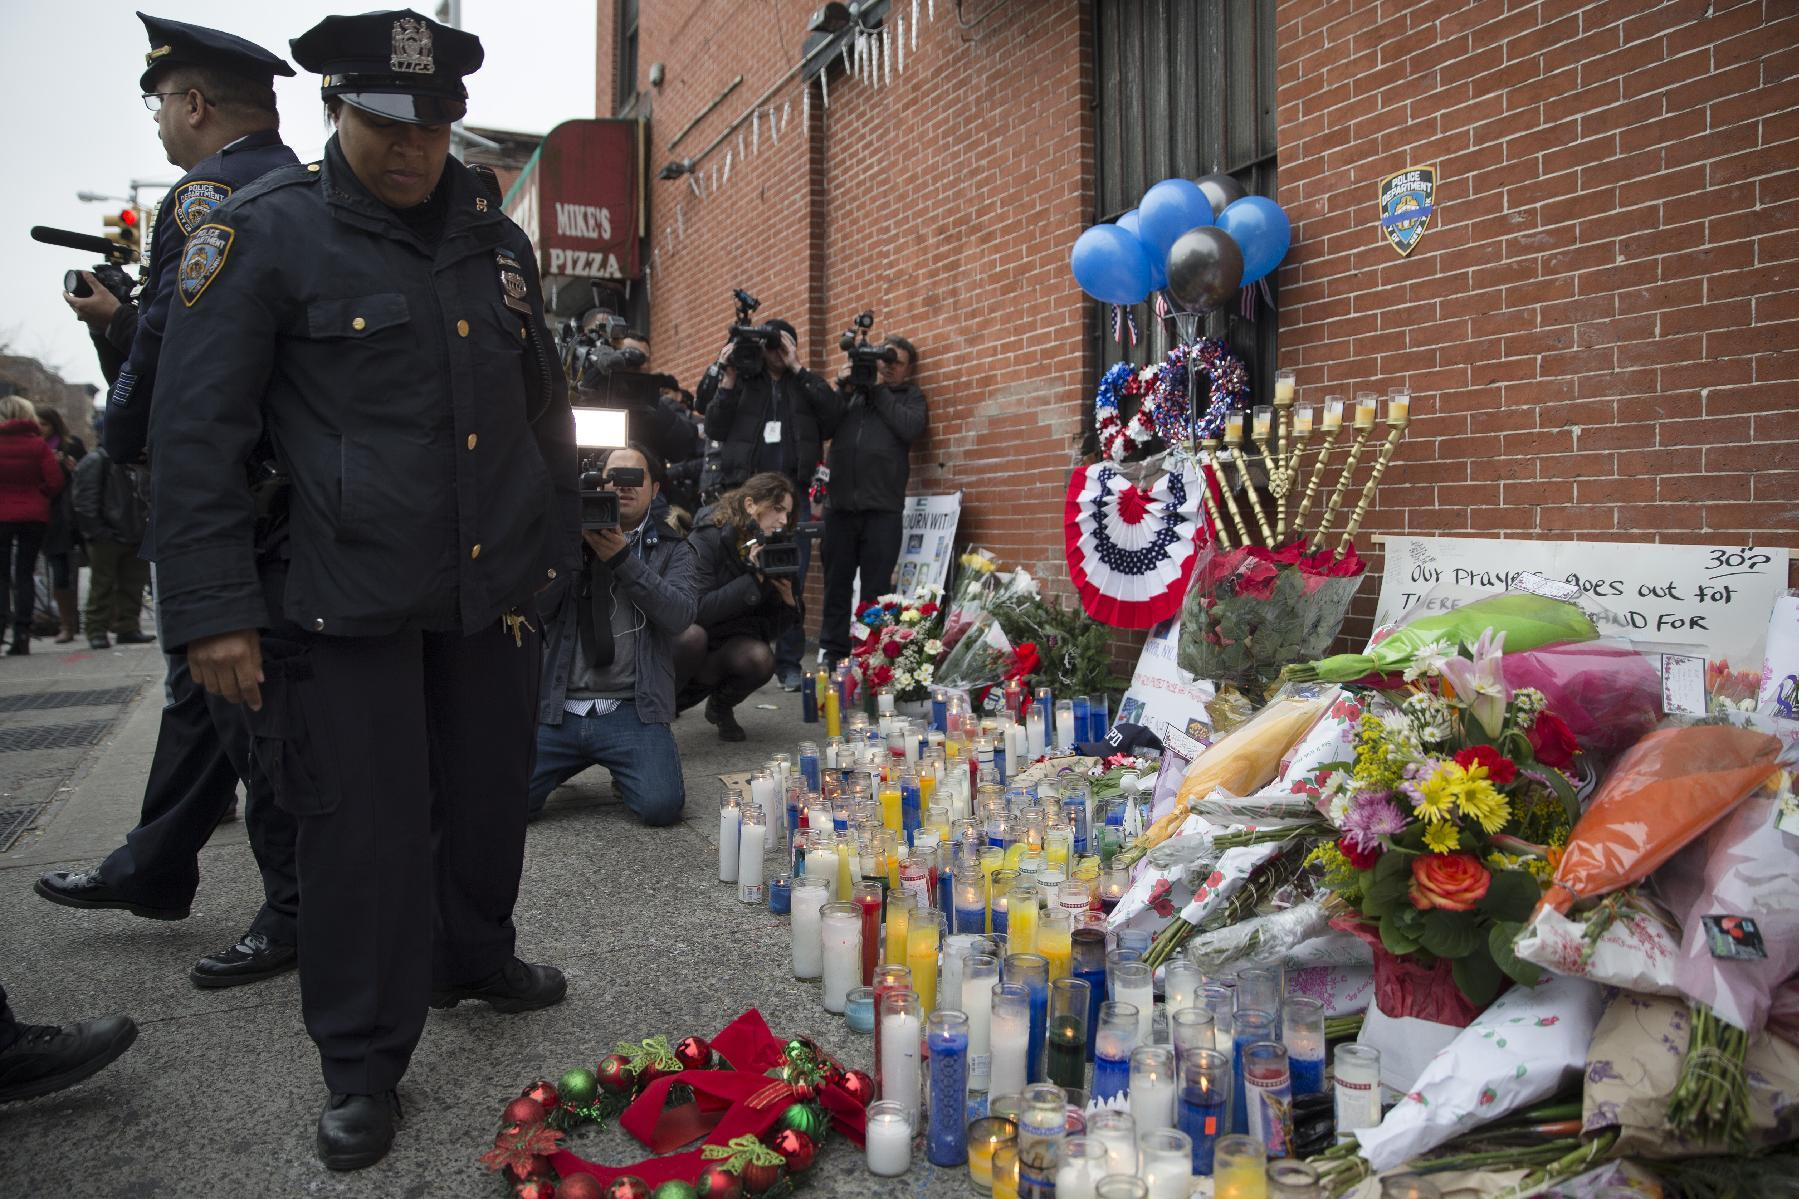 Key developments in the case of slain NYPD officers